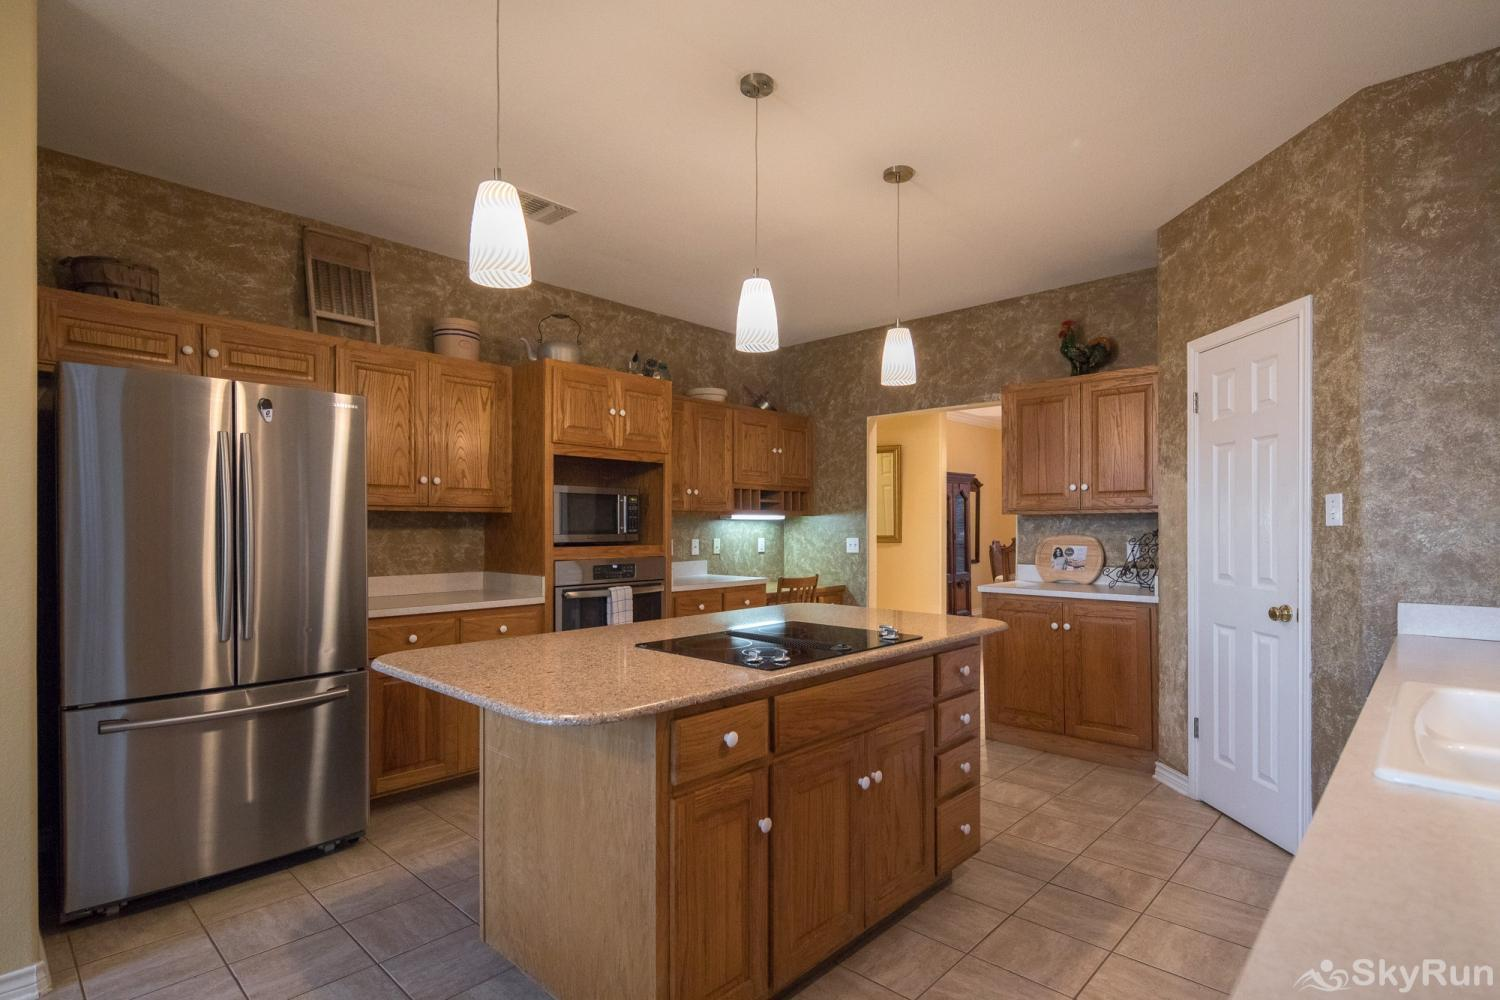 BUCKHAVEN RIDGE Kitchen Equipped with Essential Cookware and Dinnerware